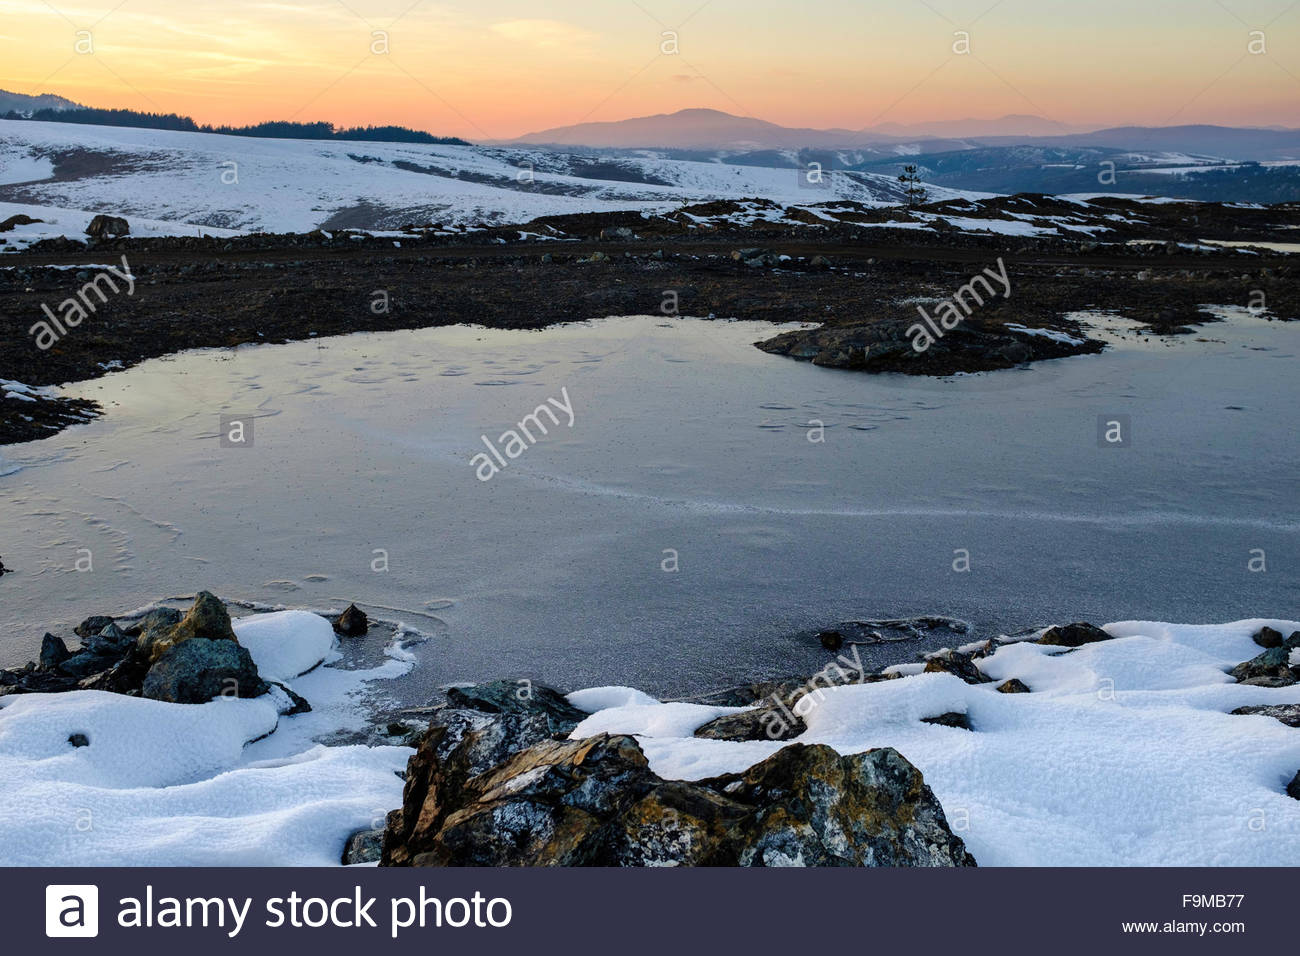 Cold evening in the Zlatibor mountains, Serbia - Stock Image